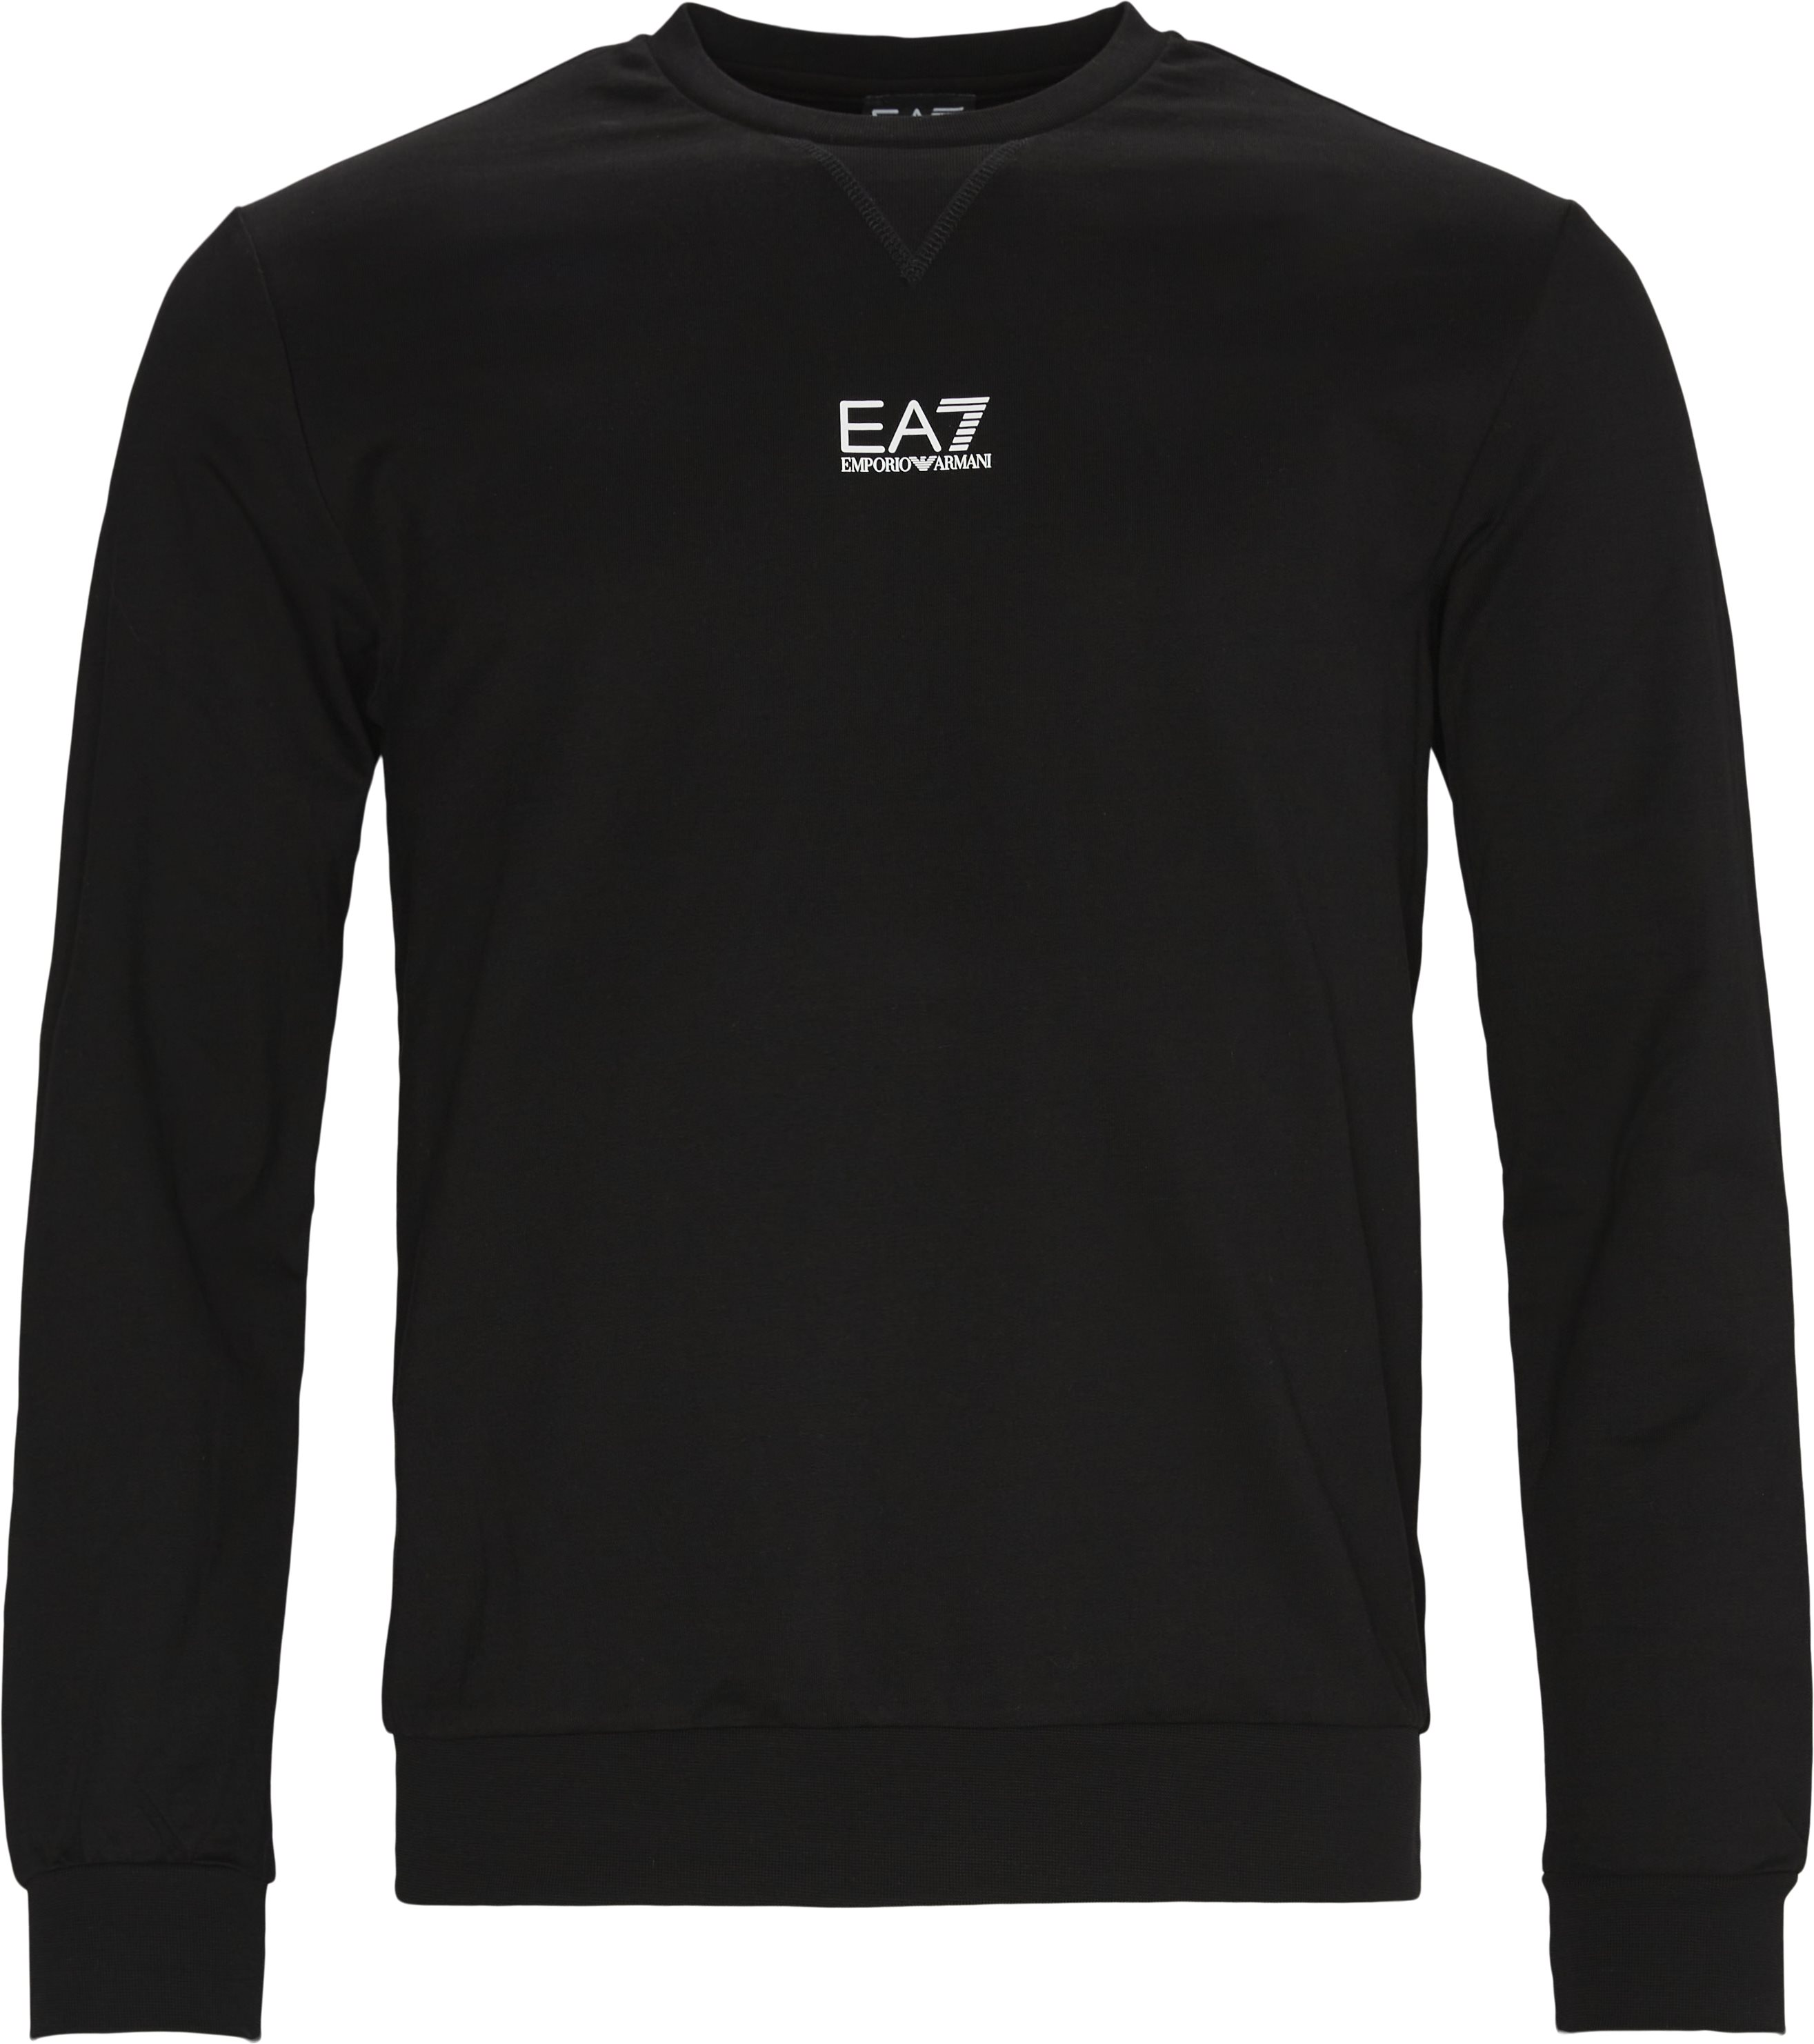 Pj05z-3kpm35 Sweatshirt - Sweatshirts - Regular - Black